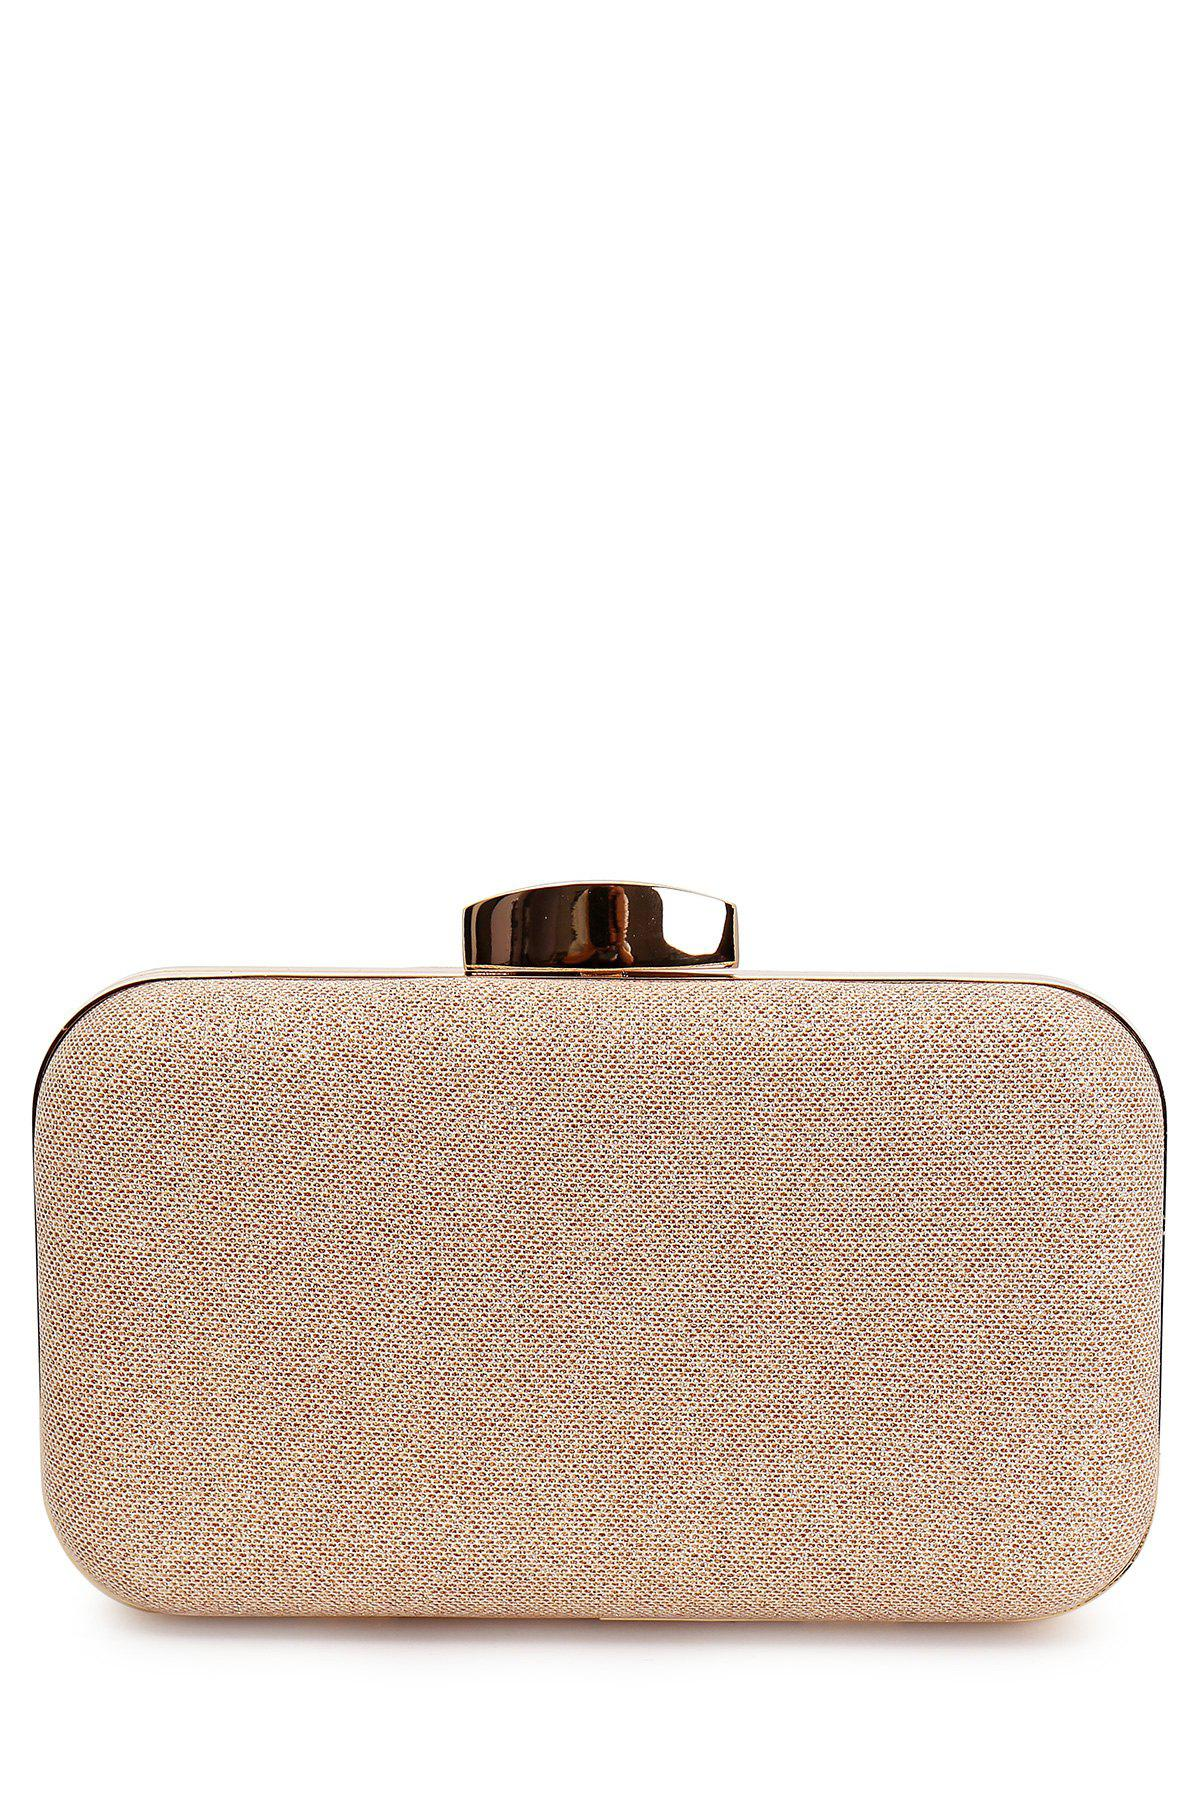 Shops Golden Evening Bag